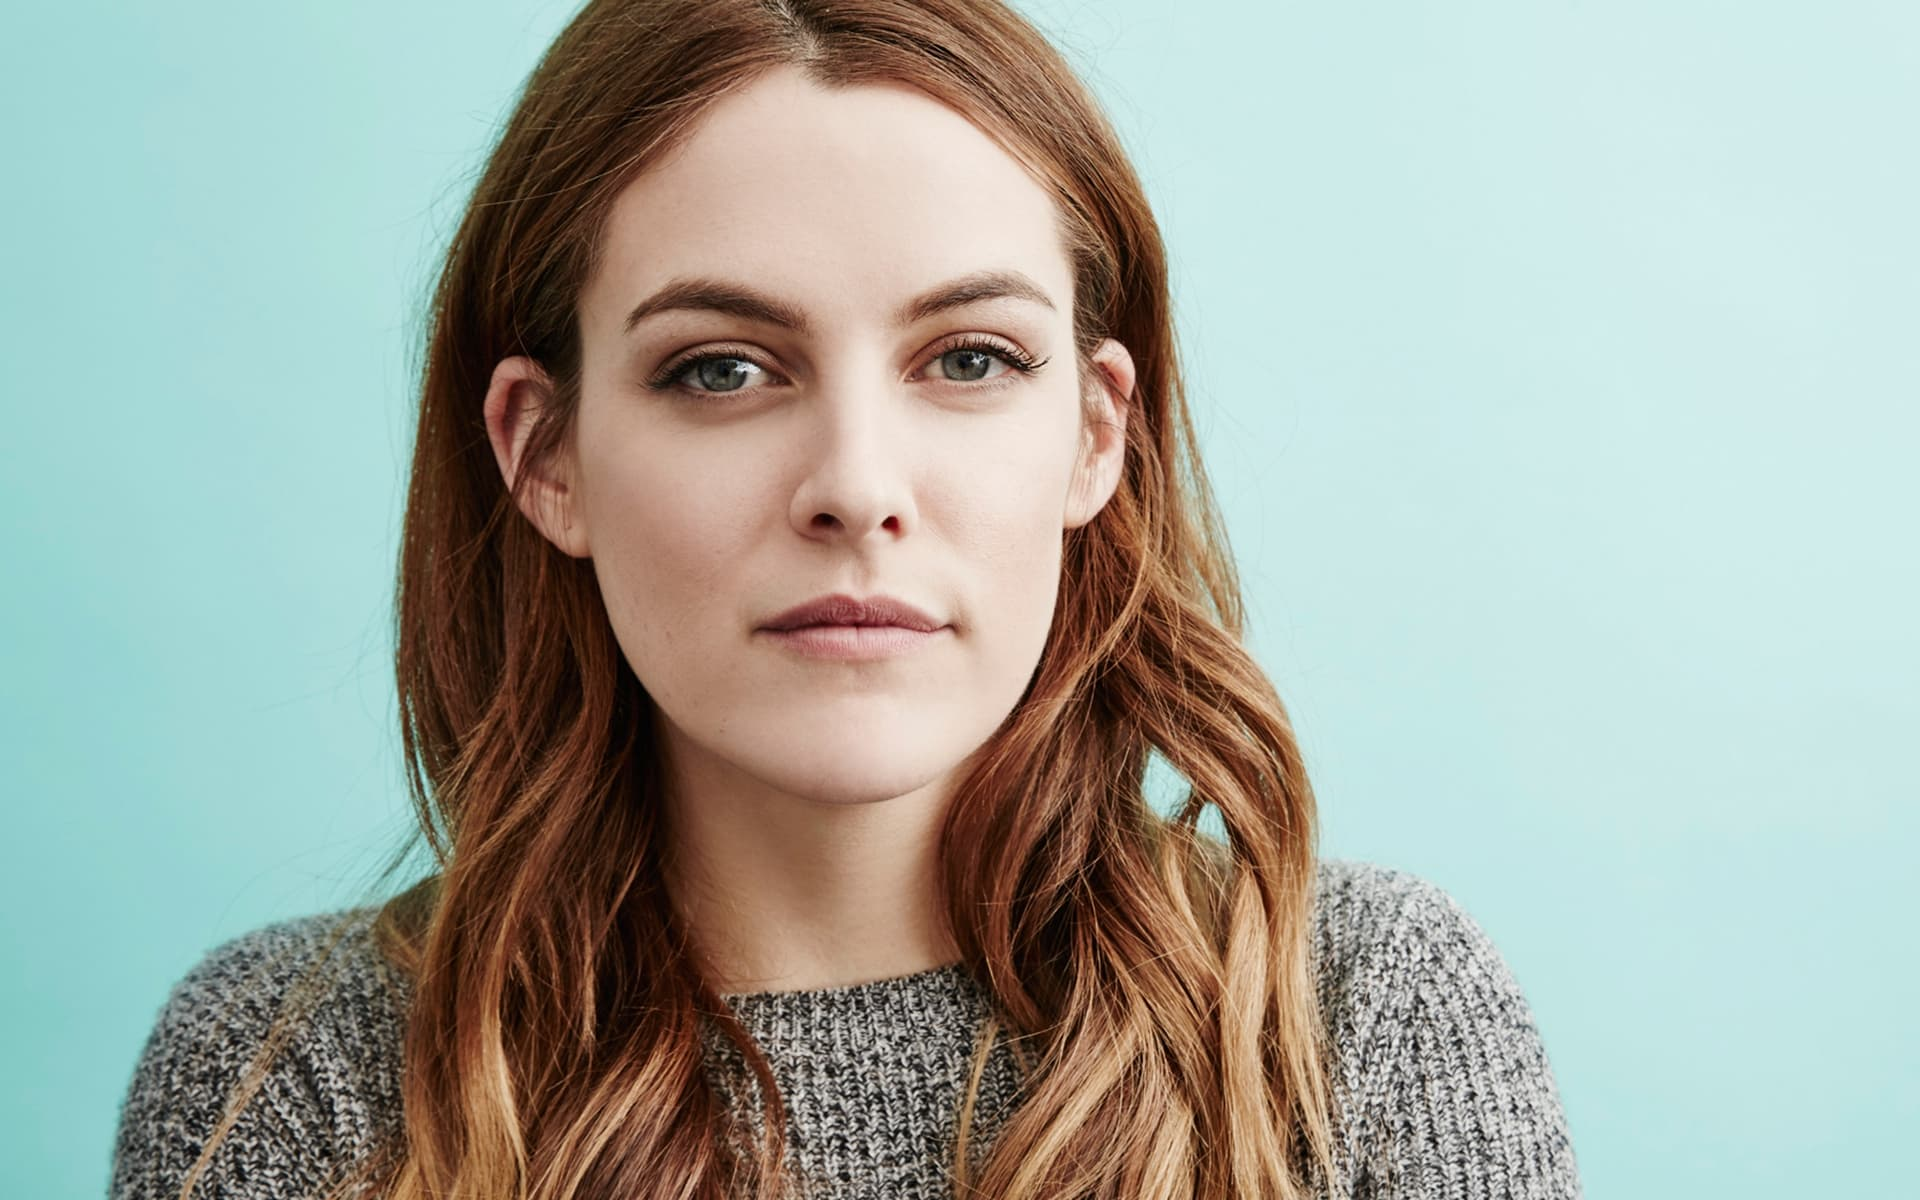 Riley keough in the girlfriend experience s01e02 7